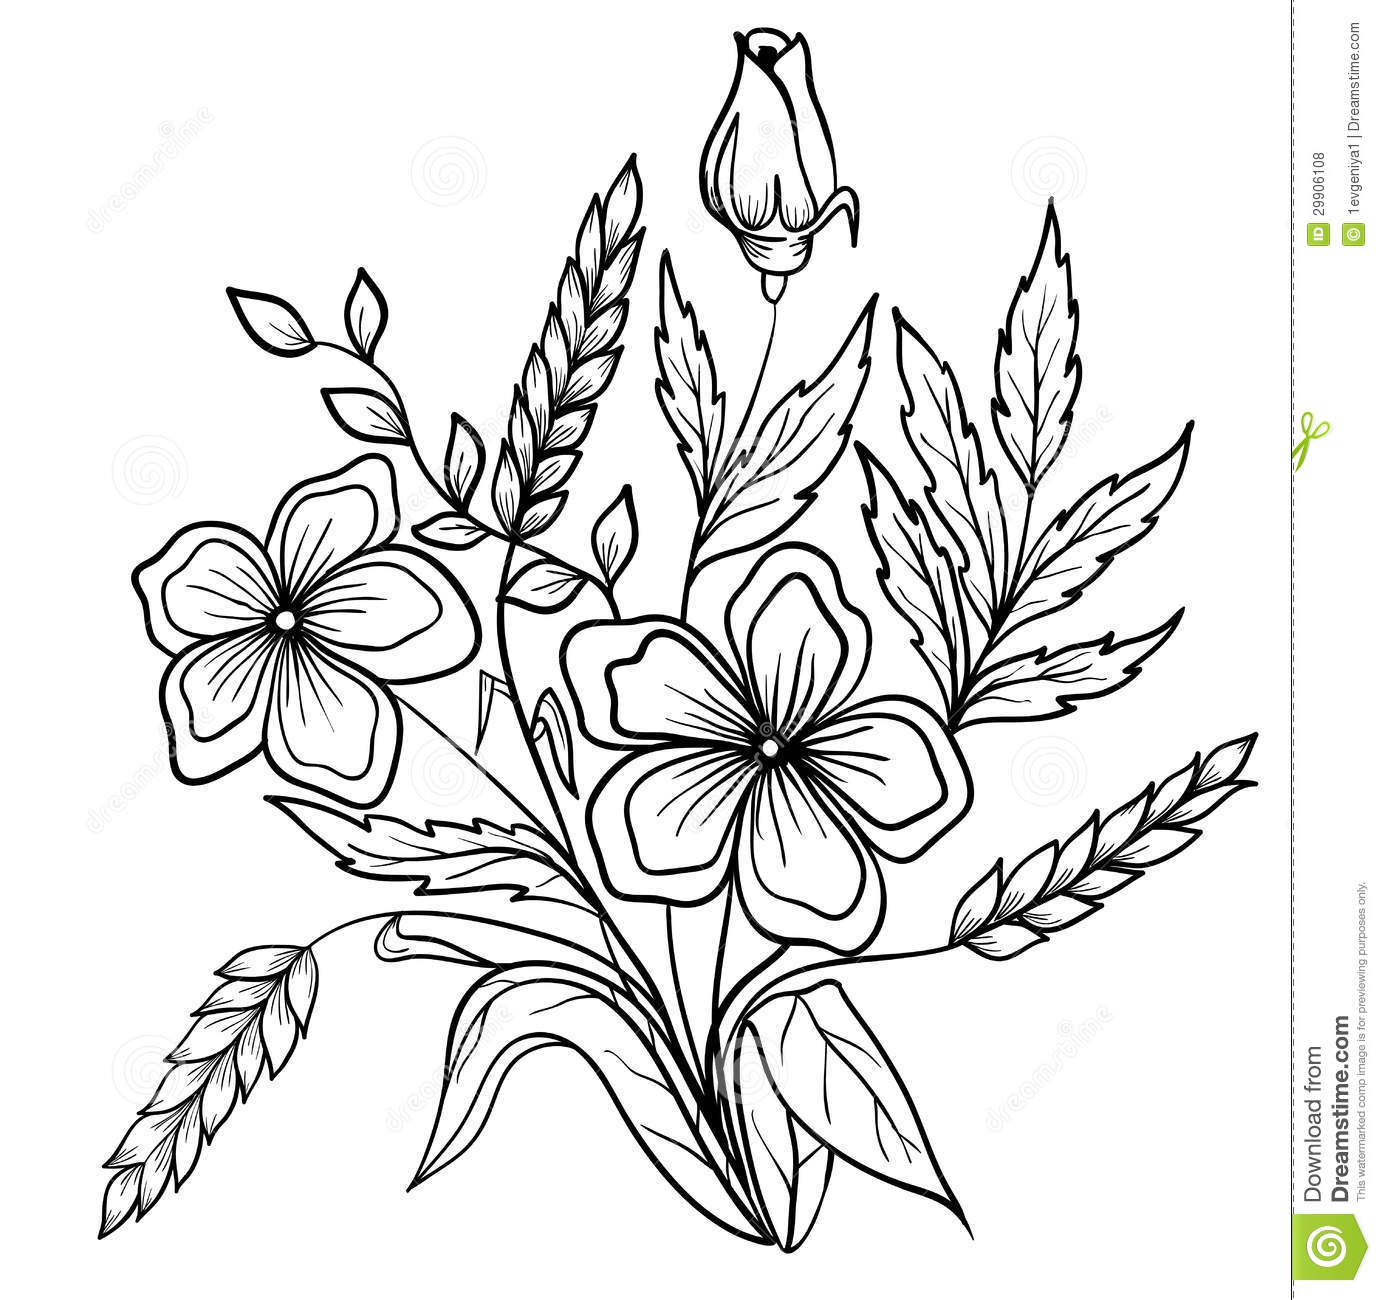 Arrangement of flowers black and white outline drawing stock vector download comp mightylinksfo